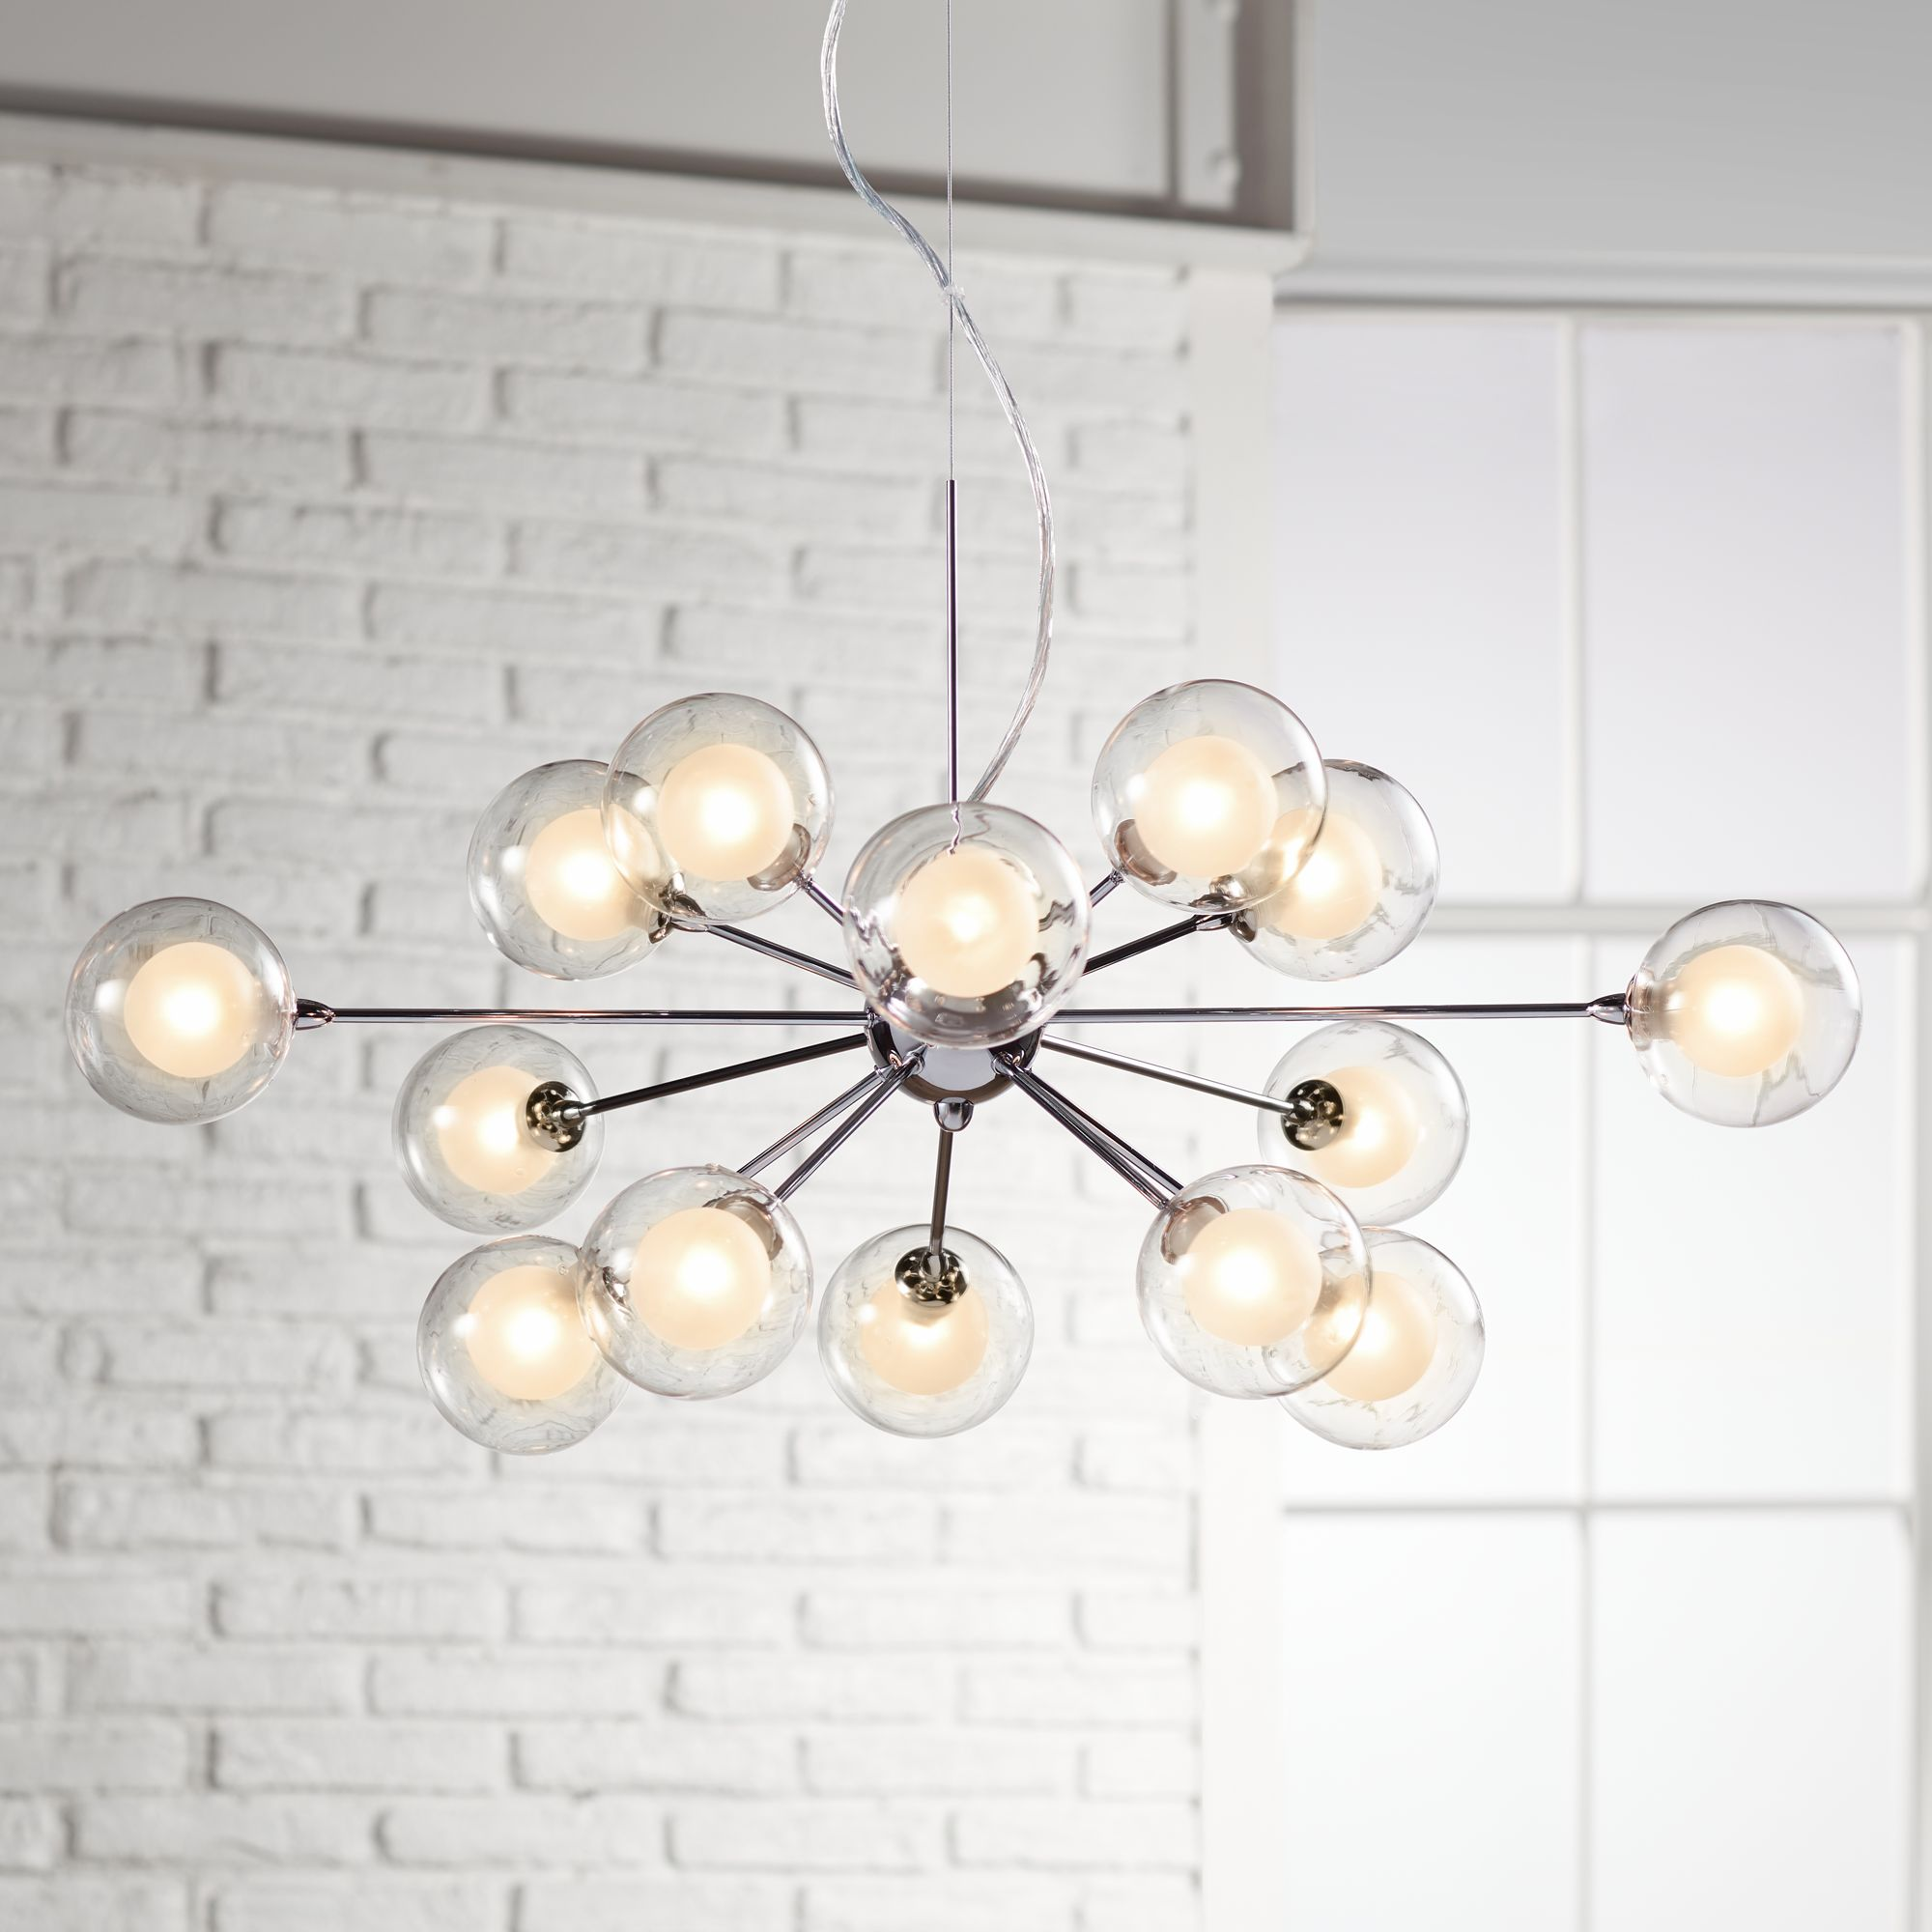 Possini Euro Design Spheres 15 Light Glass Pendant